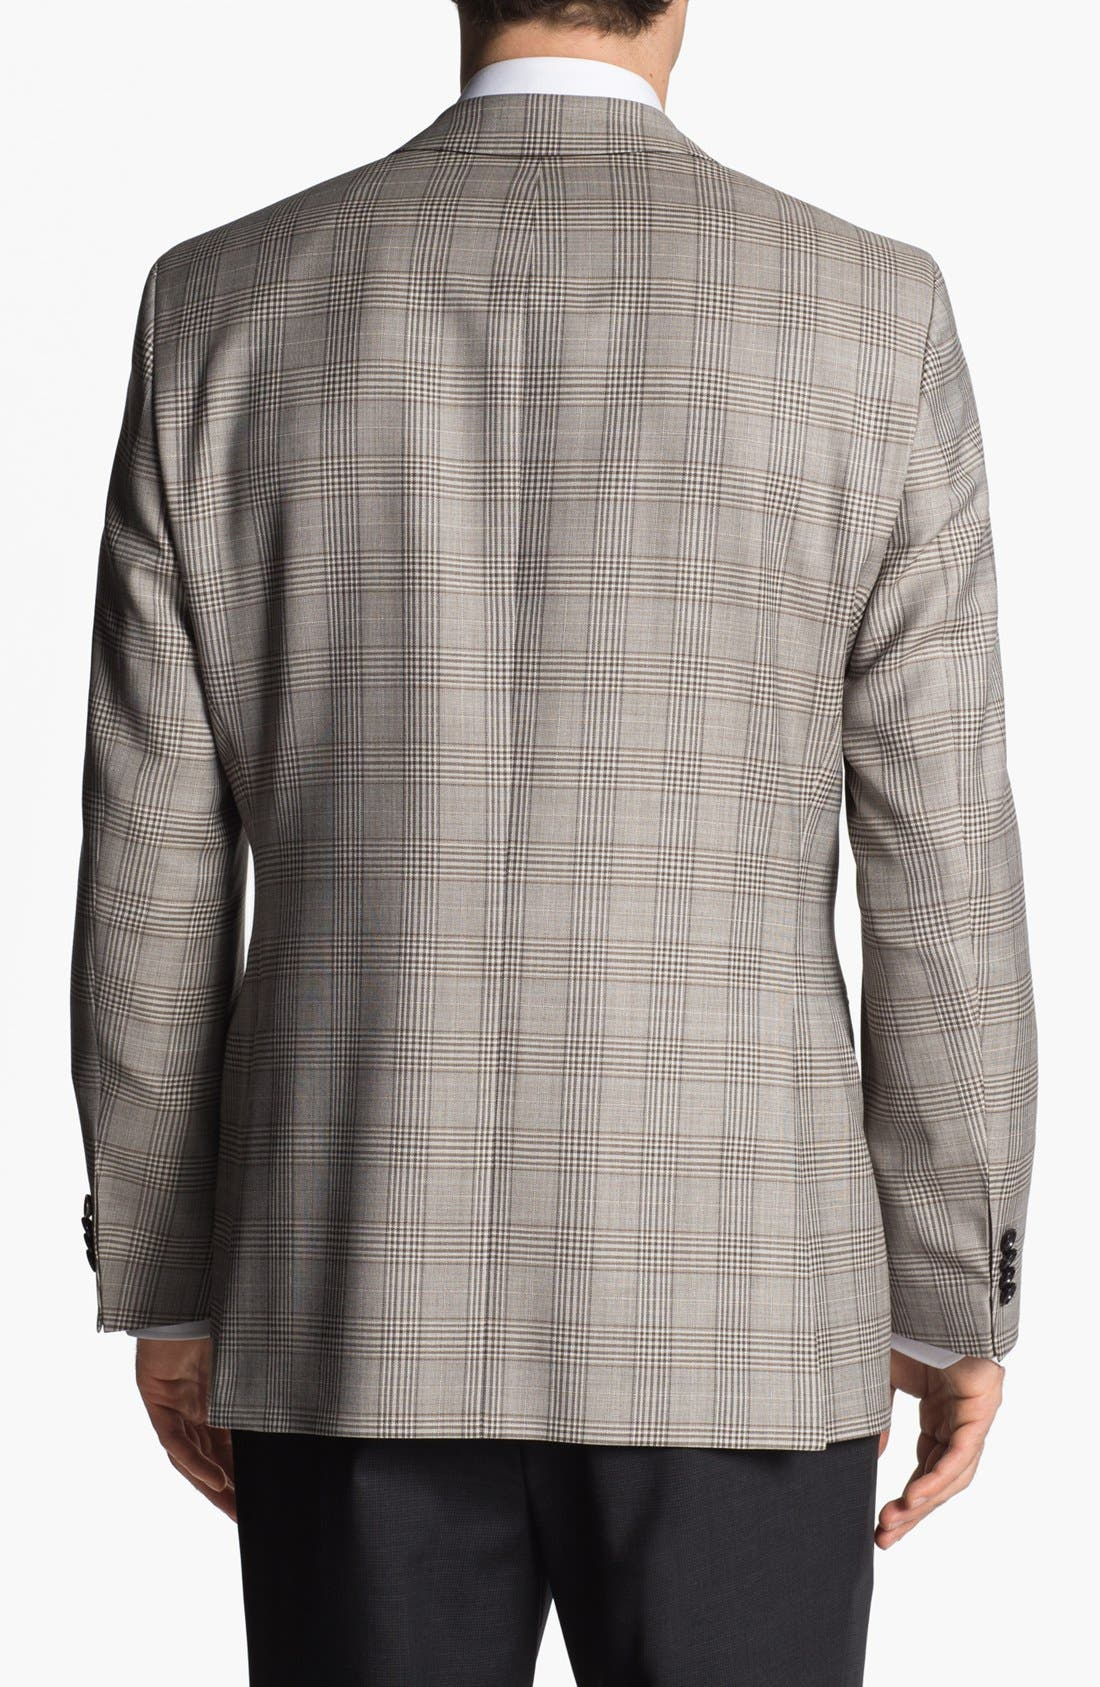 Alternate Image 3  - BOSS HUGO BOSS 'Pasini' Glen Plaid Sportcoat